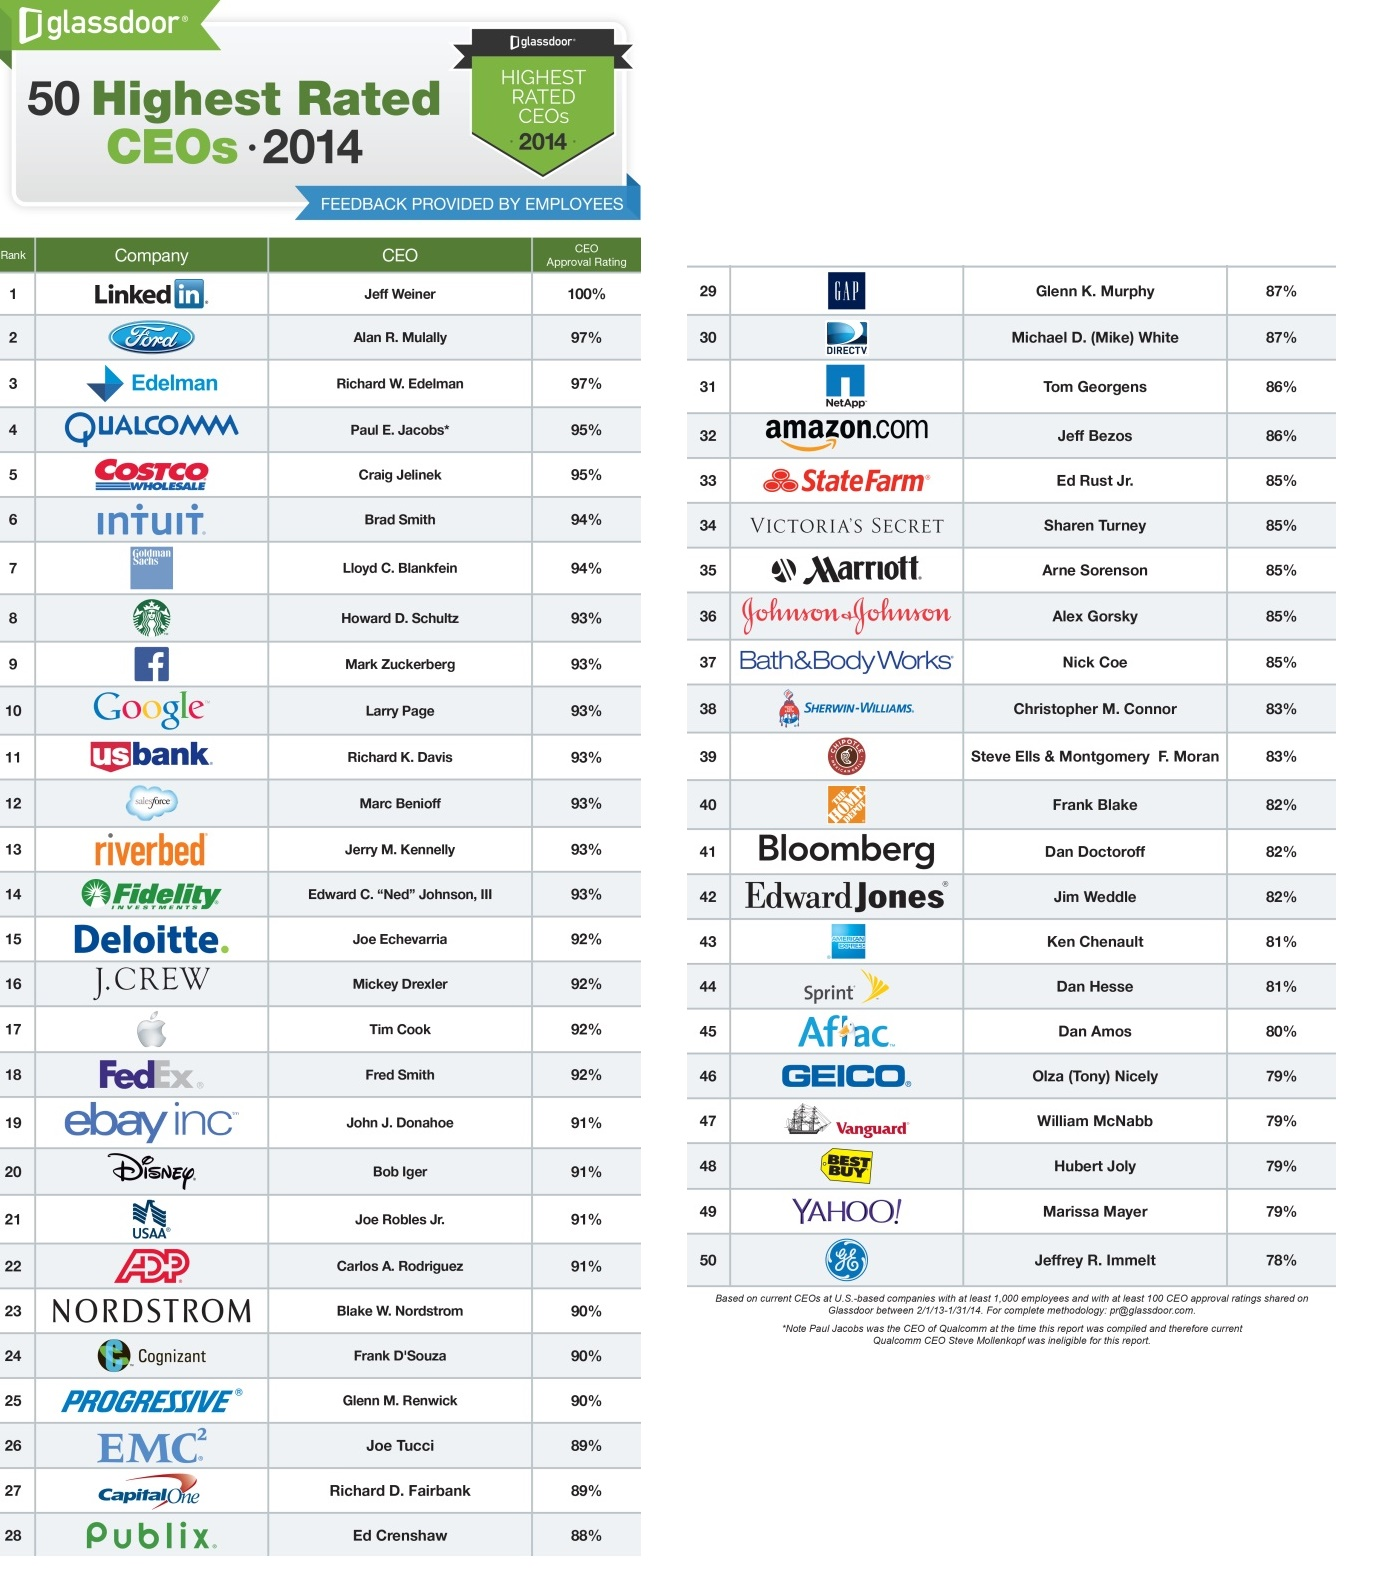 Glassdoor published the list of 50 top CEOs